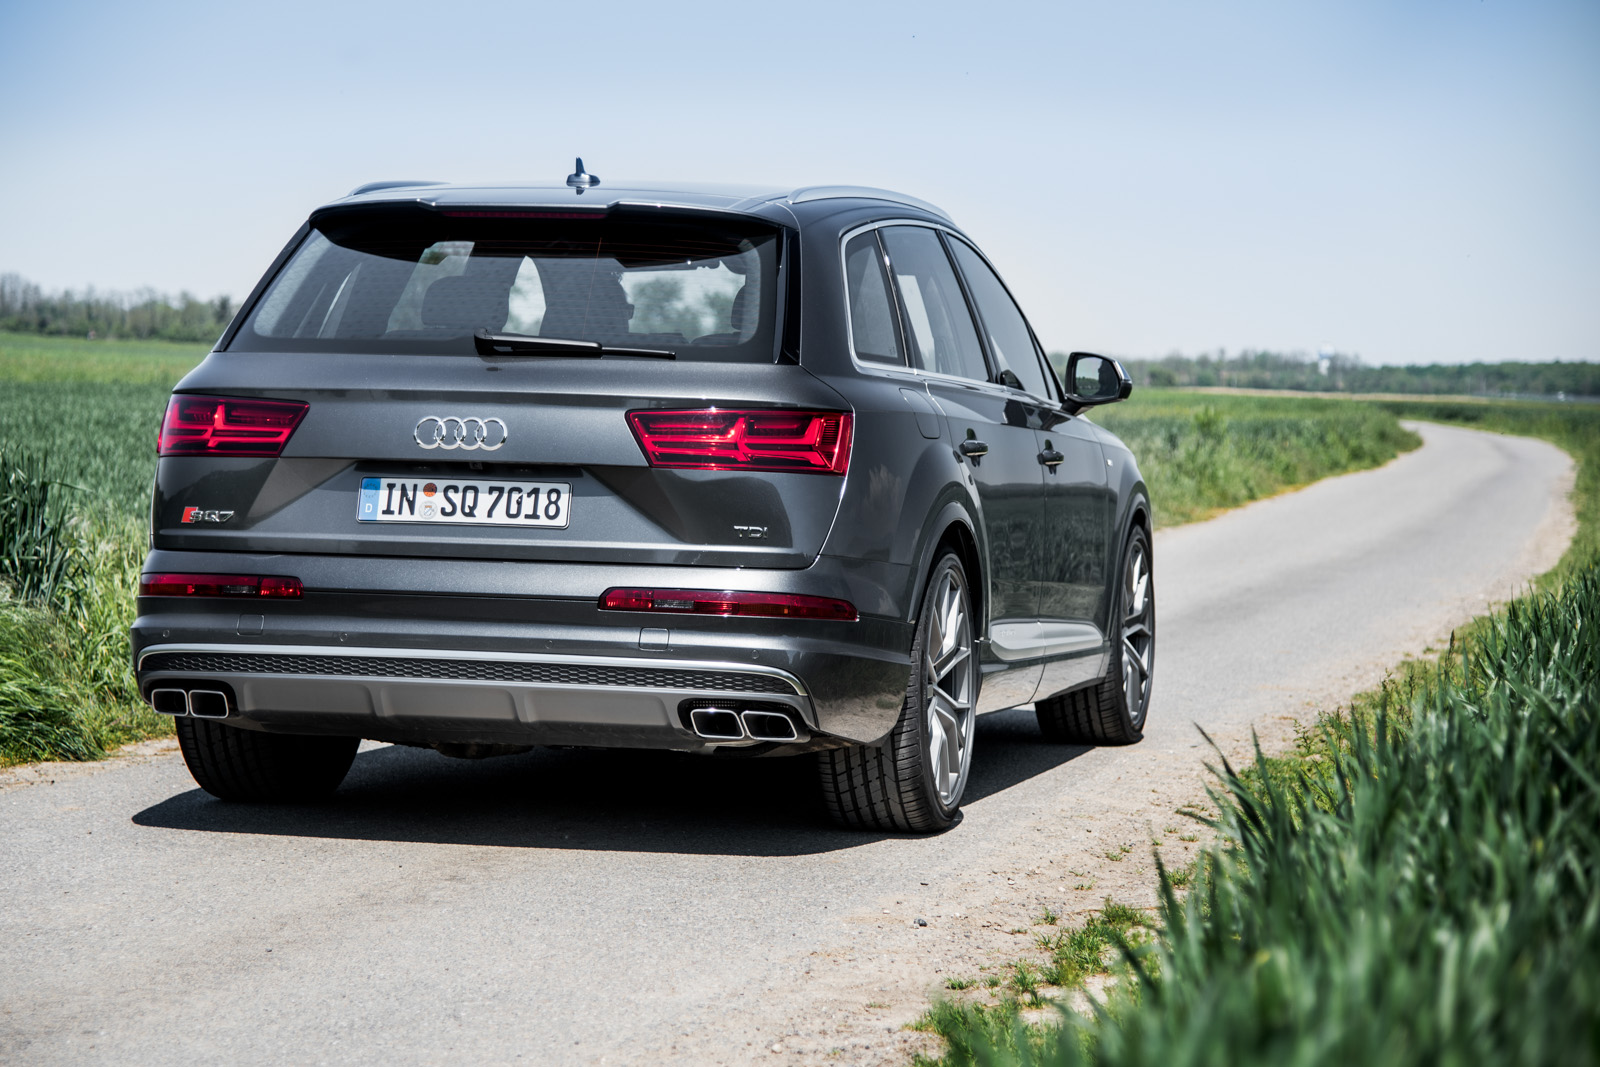 2017 Audi SQ7 TDI Review - GTspirit